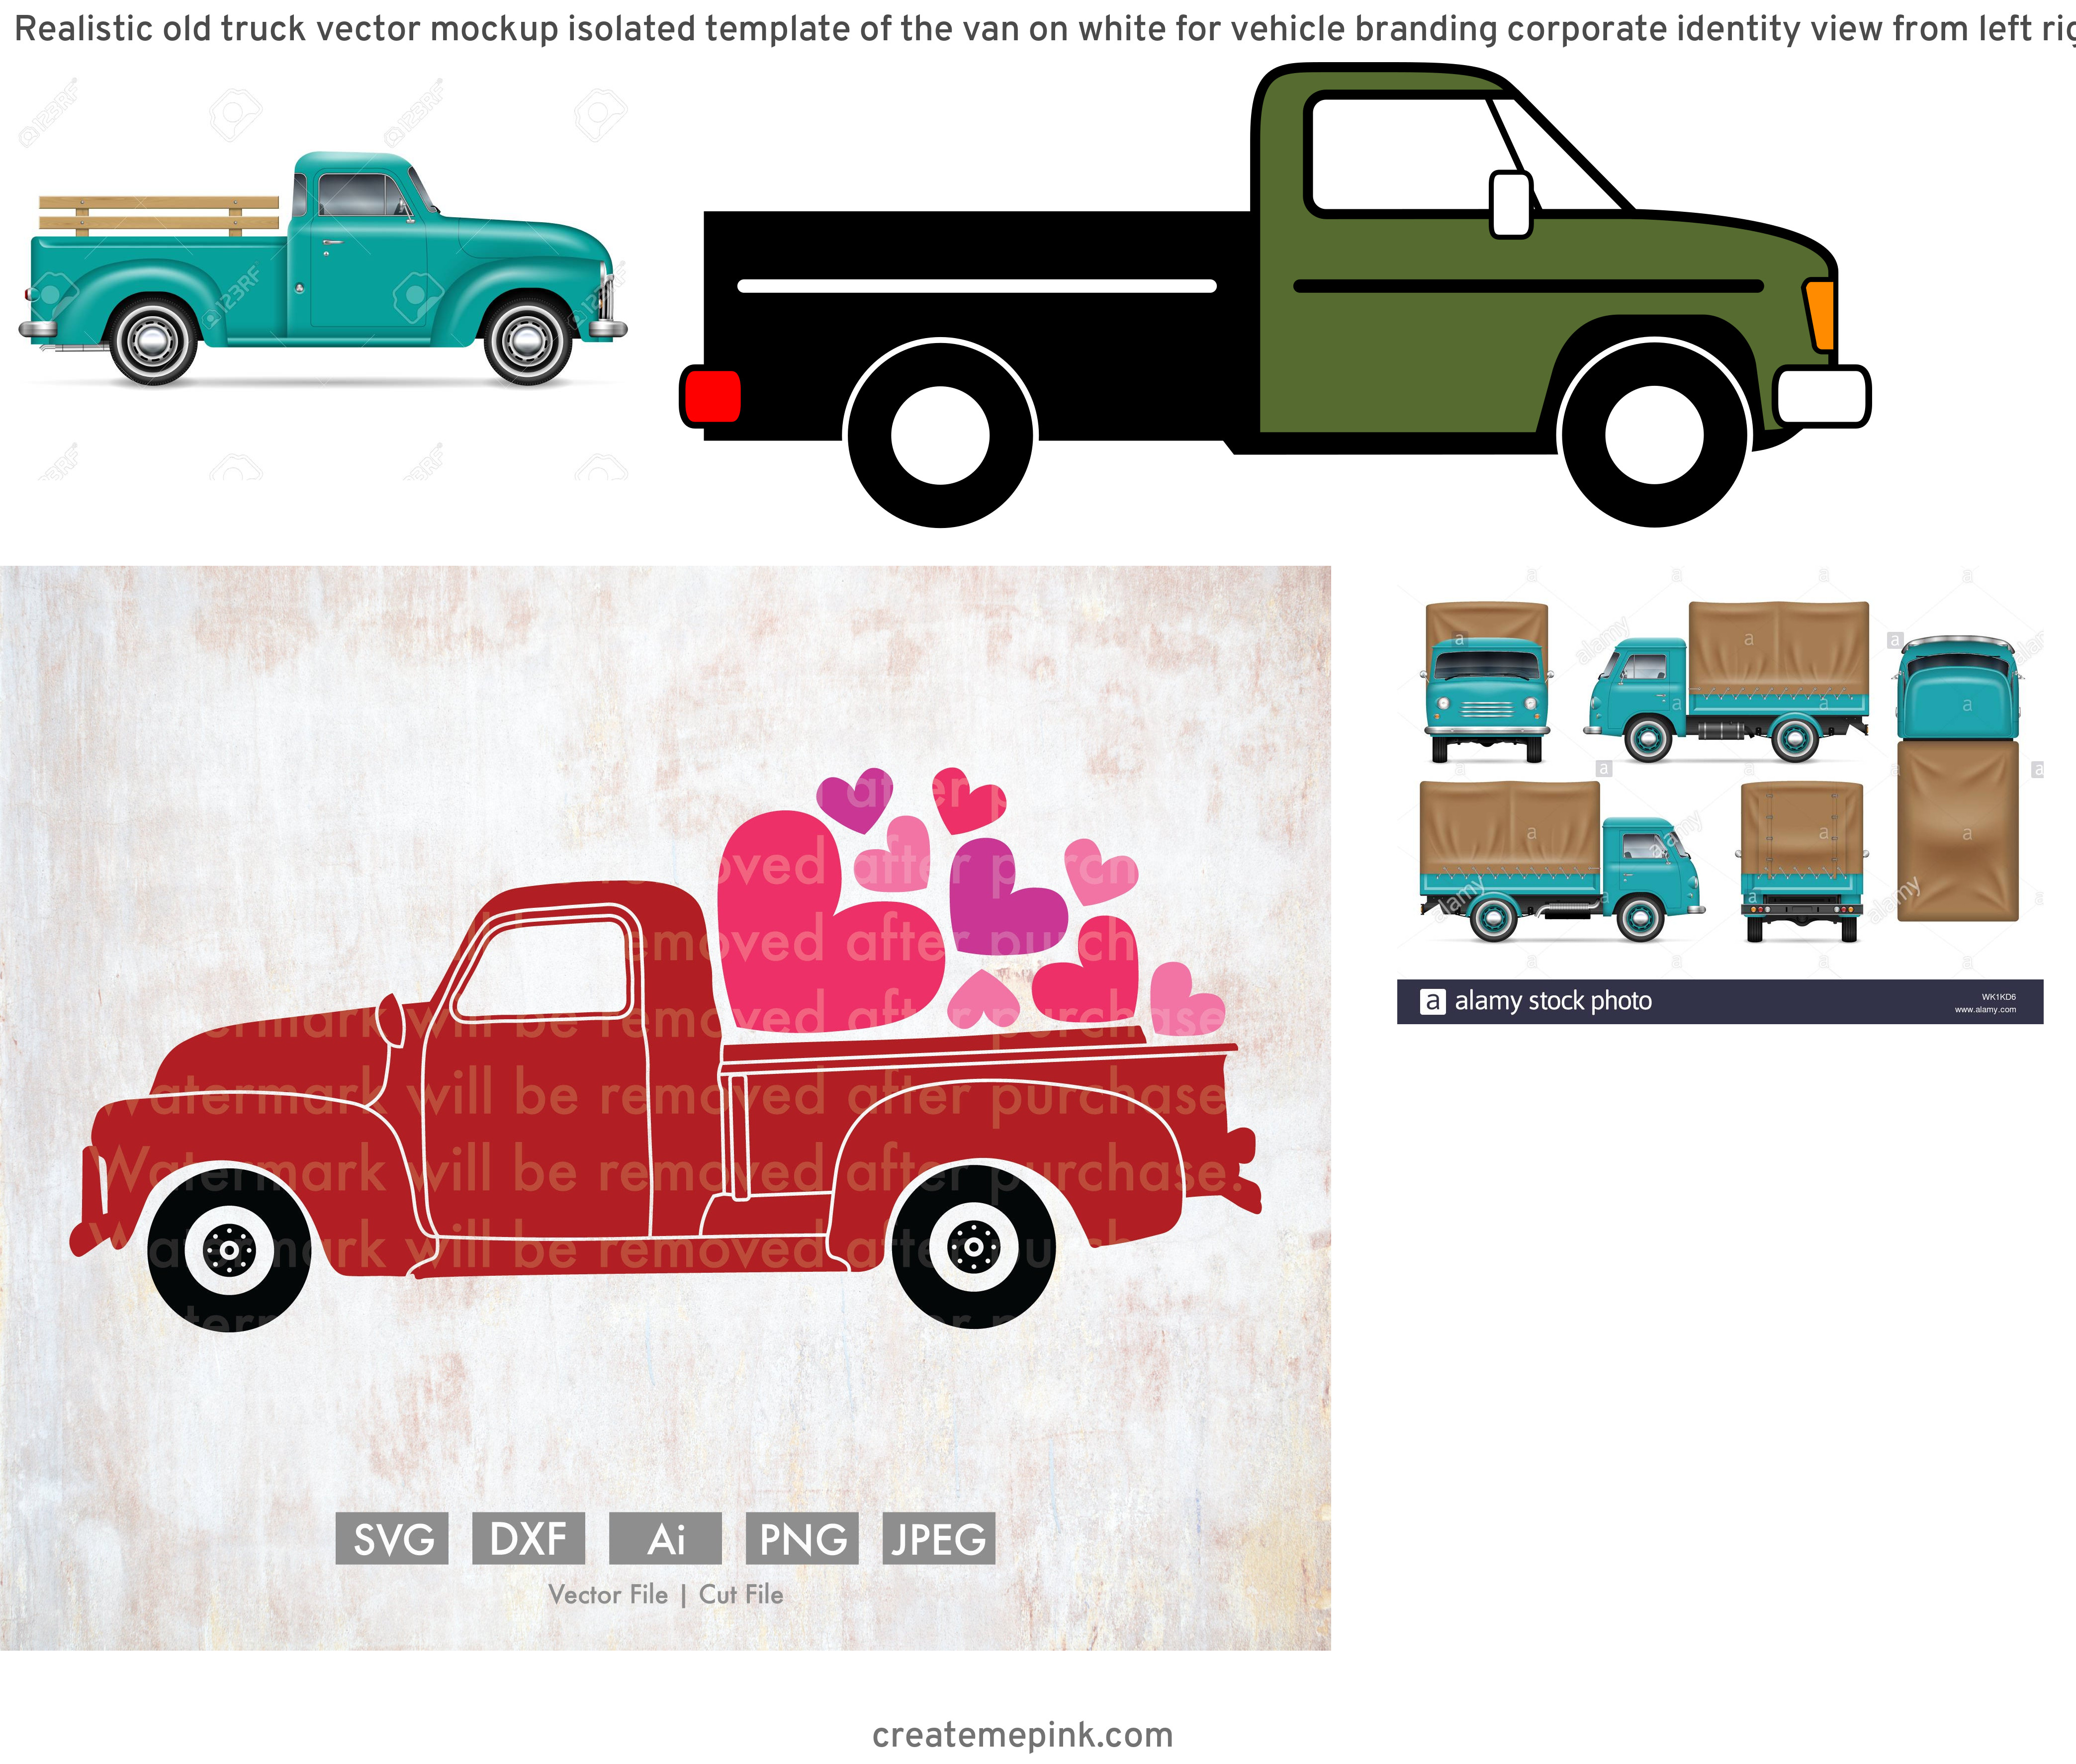 Old Truck Vector: Realistic Old Truck Vector Mockup Isolated Template Of The Van On White For Vehicle Branding Corporate Identity View From Left Right Front Back Image